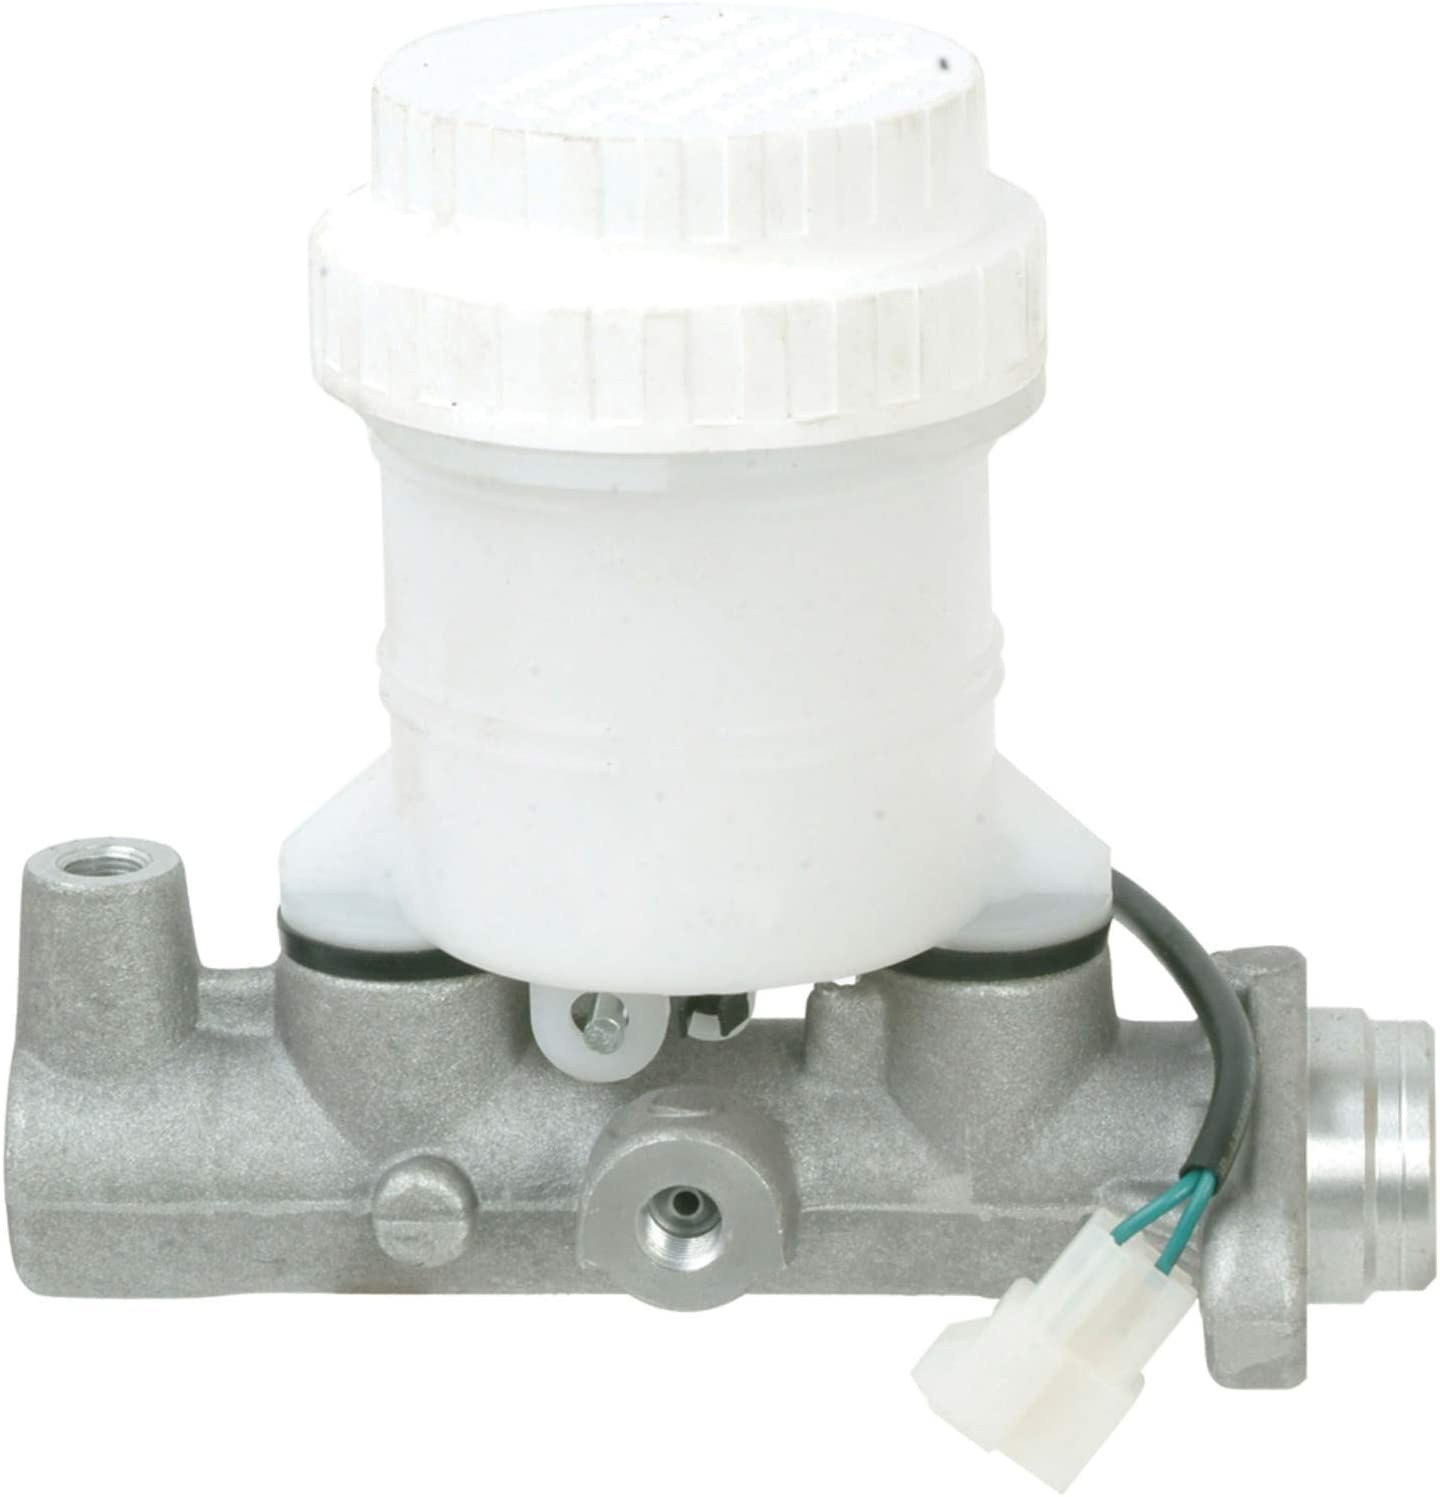 Cardone 2021 autumn and winter new 13-2752 Challenge the lowest price of Japan ☆ New Master Cylinder Brake